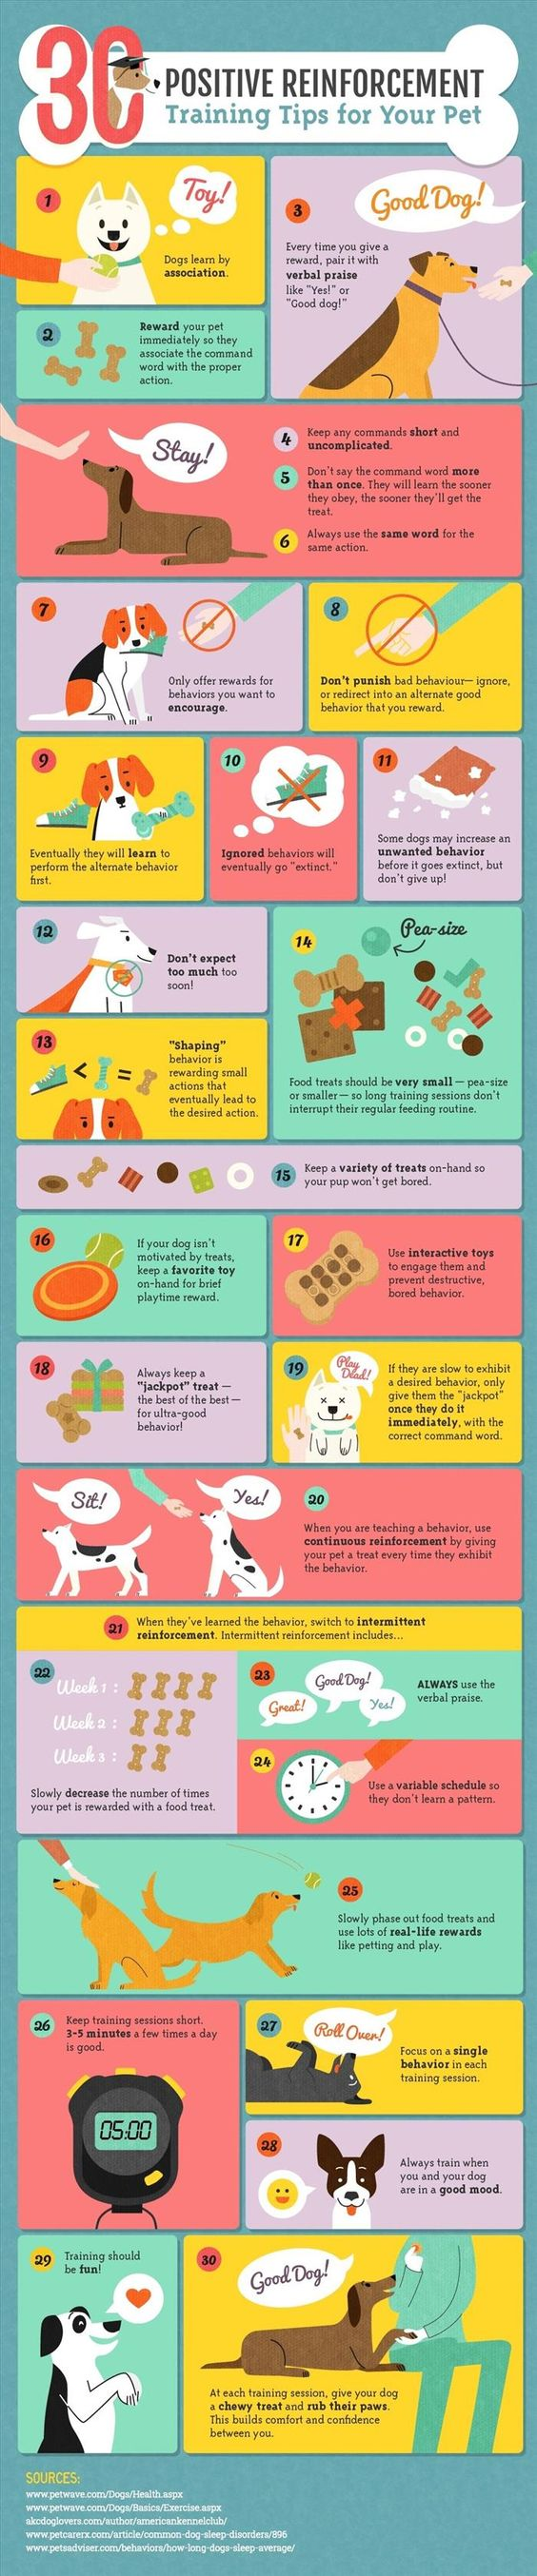 30 Positive Reinforcement Tips to Train Your Dog